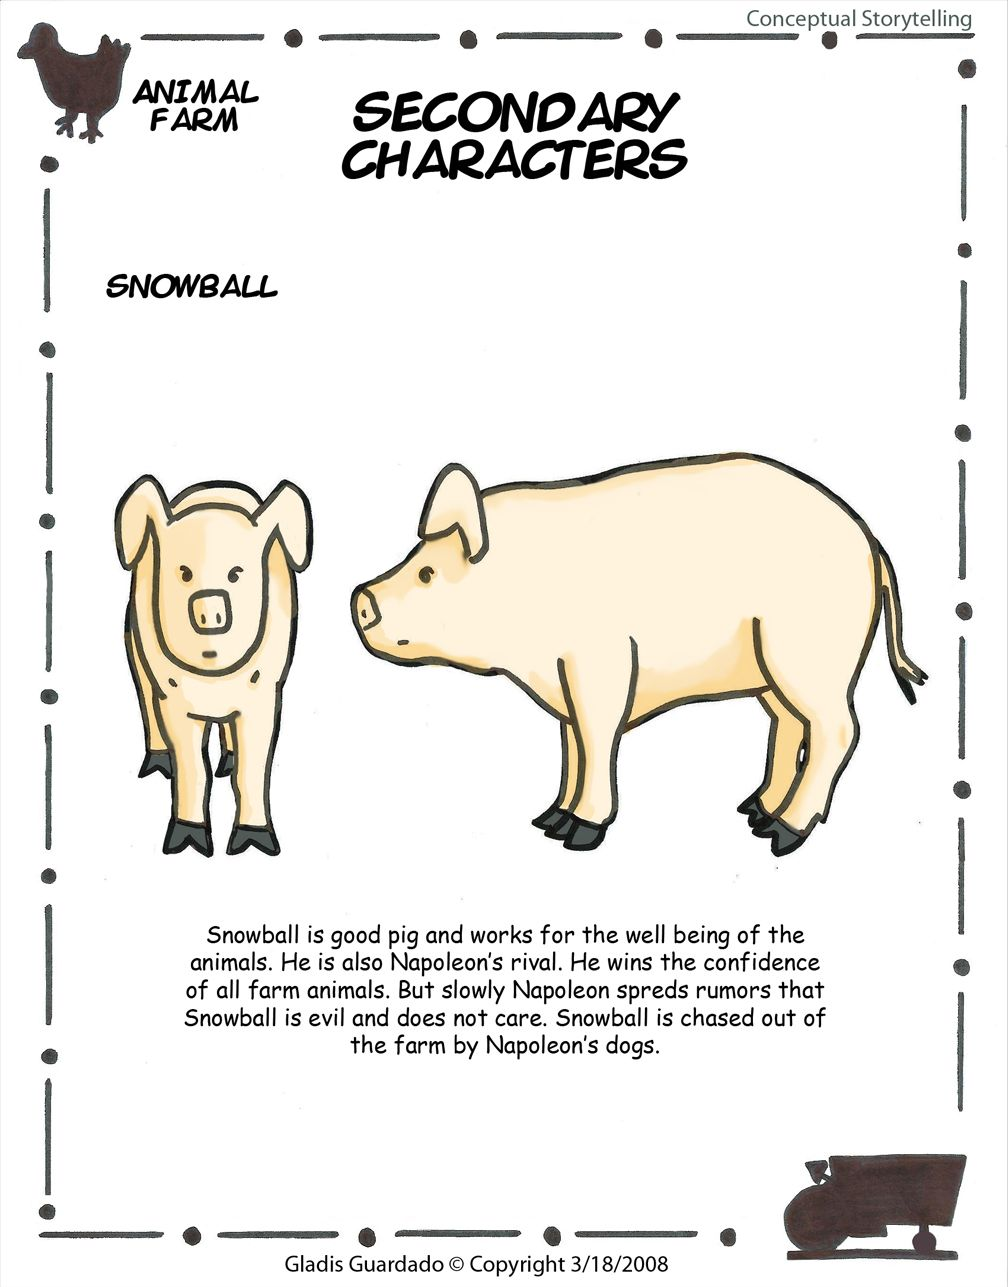 Animal Farm Quotes Animal Farm Images  Google Search  Animal Farm  Pinterest  Farming